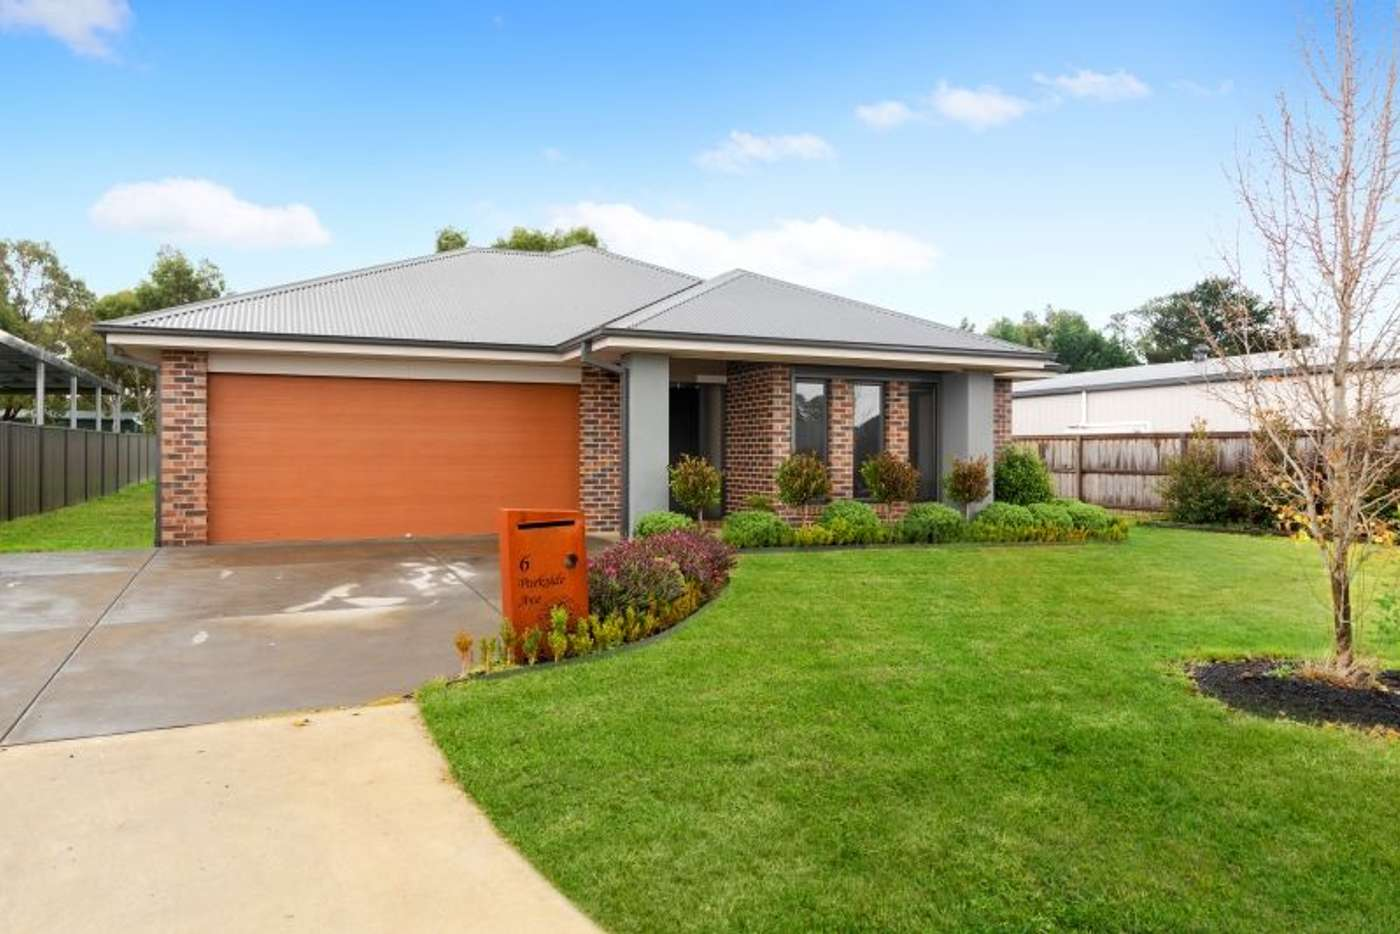 Main view of Homely house listing, 6 Parkside Avenue, Romsey VIC 3434